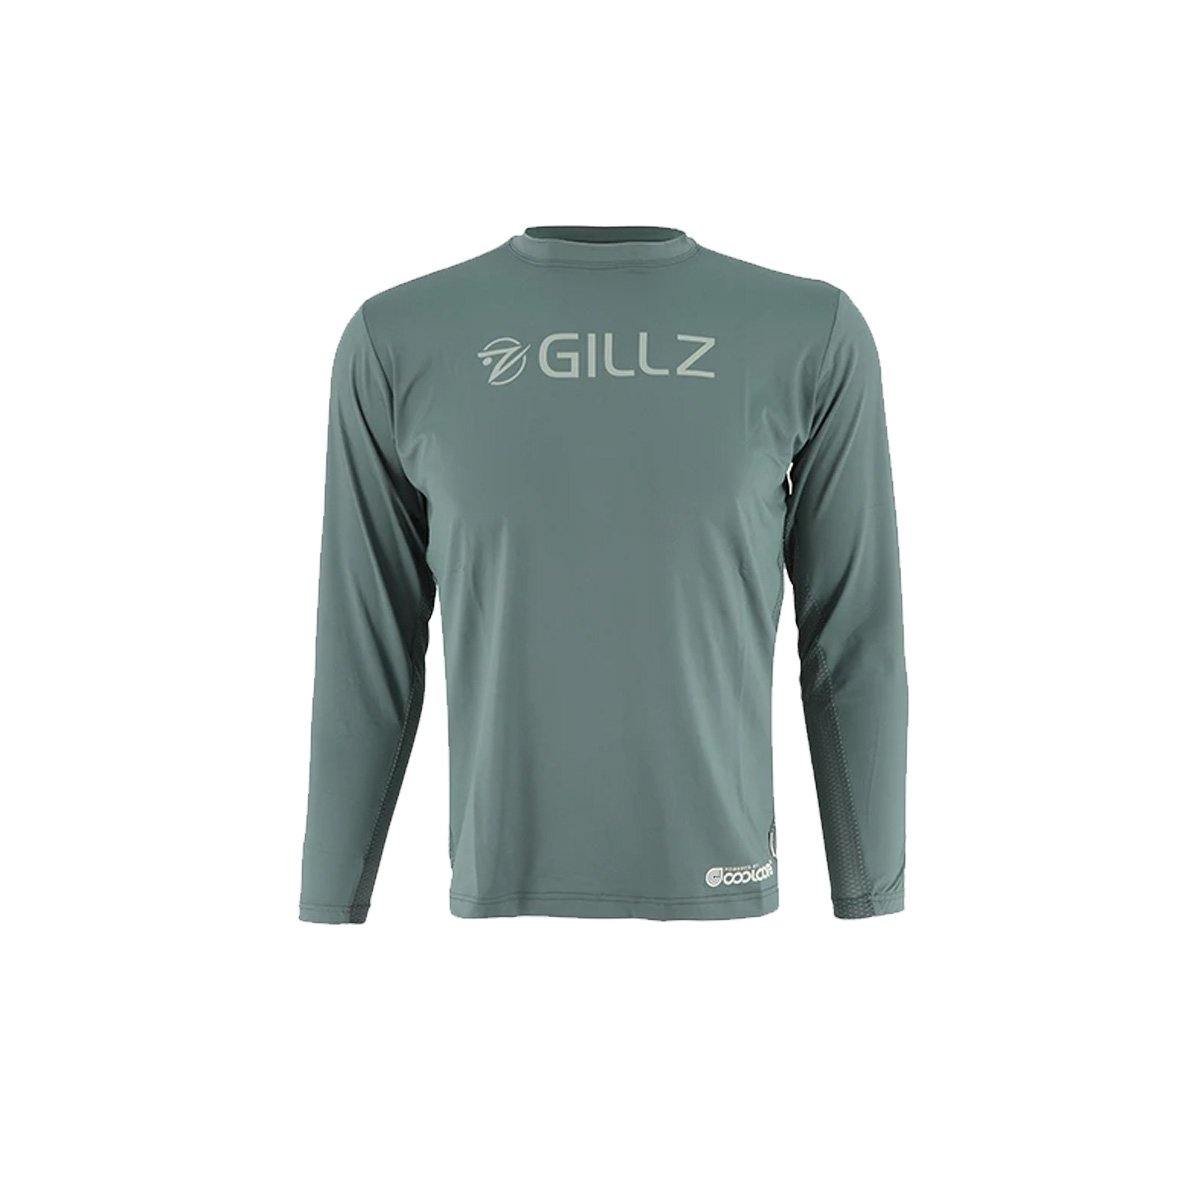 Gillz Men's Long Sleeve UV Tournament Series